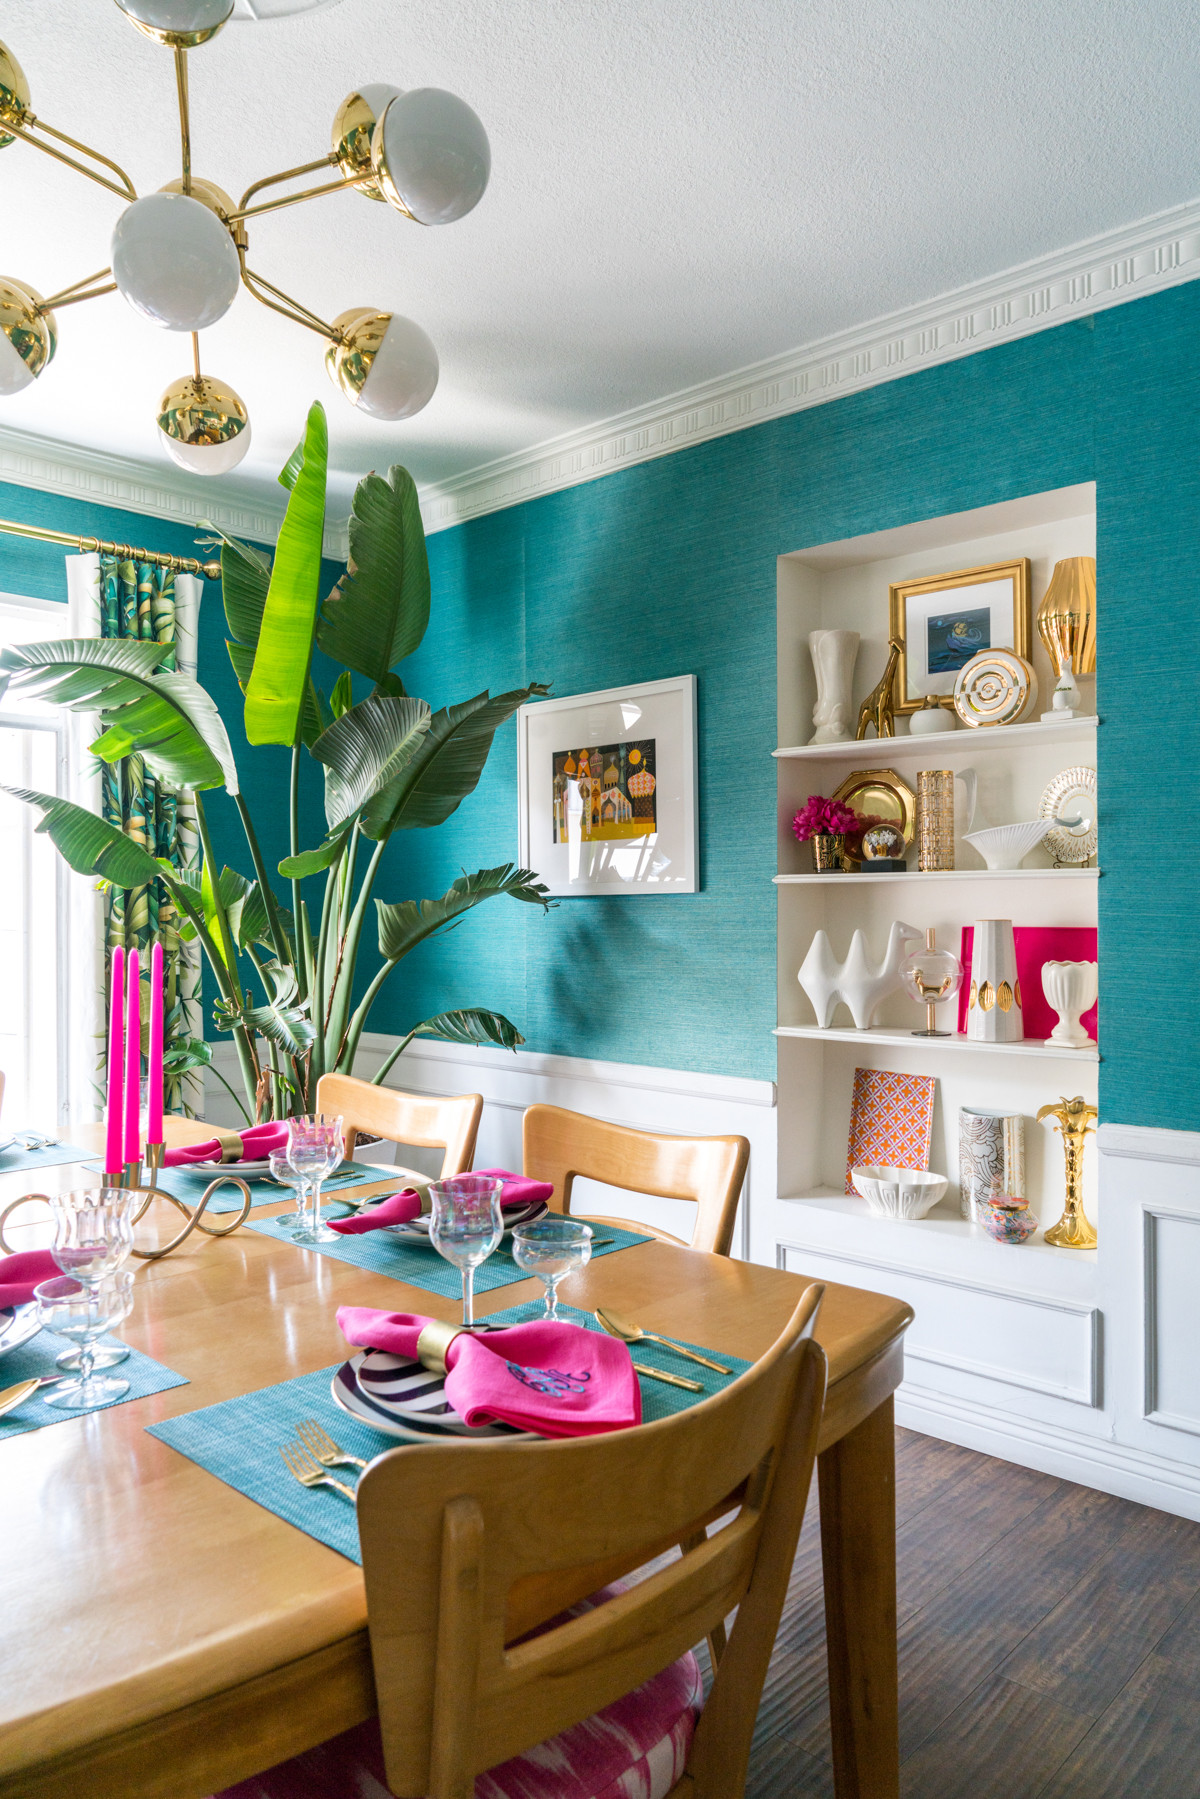 75 Beautiful Small Enclosed Dining Room Pictures Ideas February 2021 Houzz